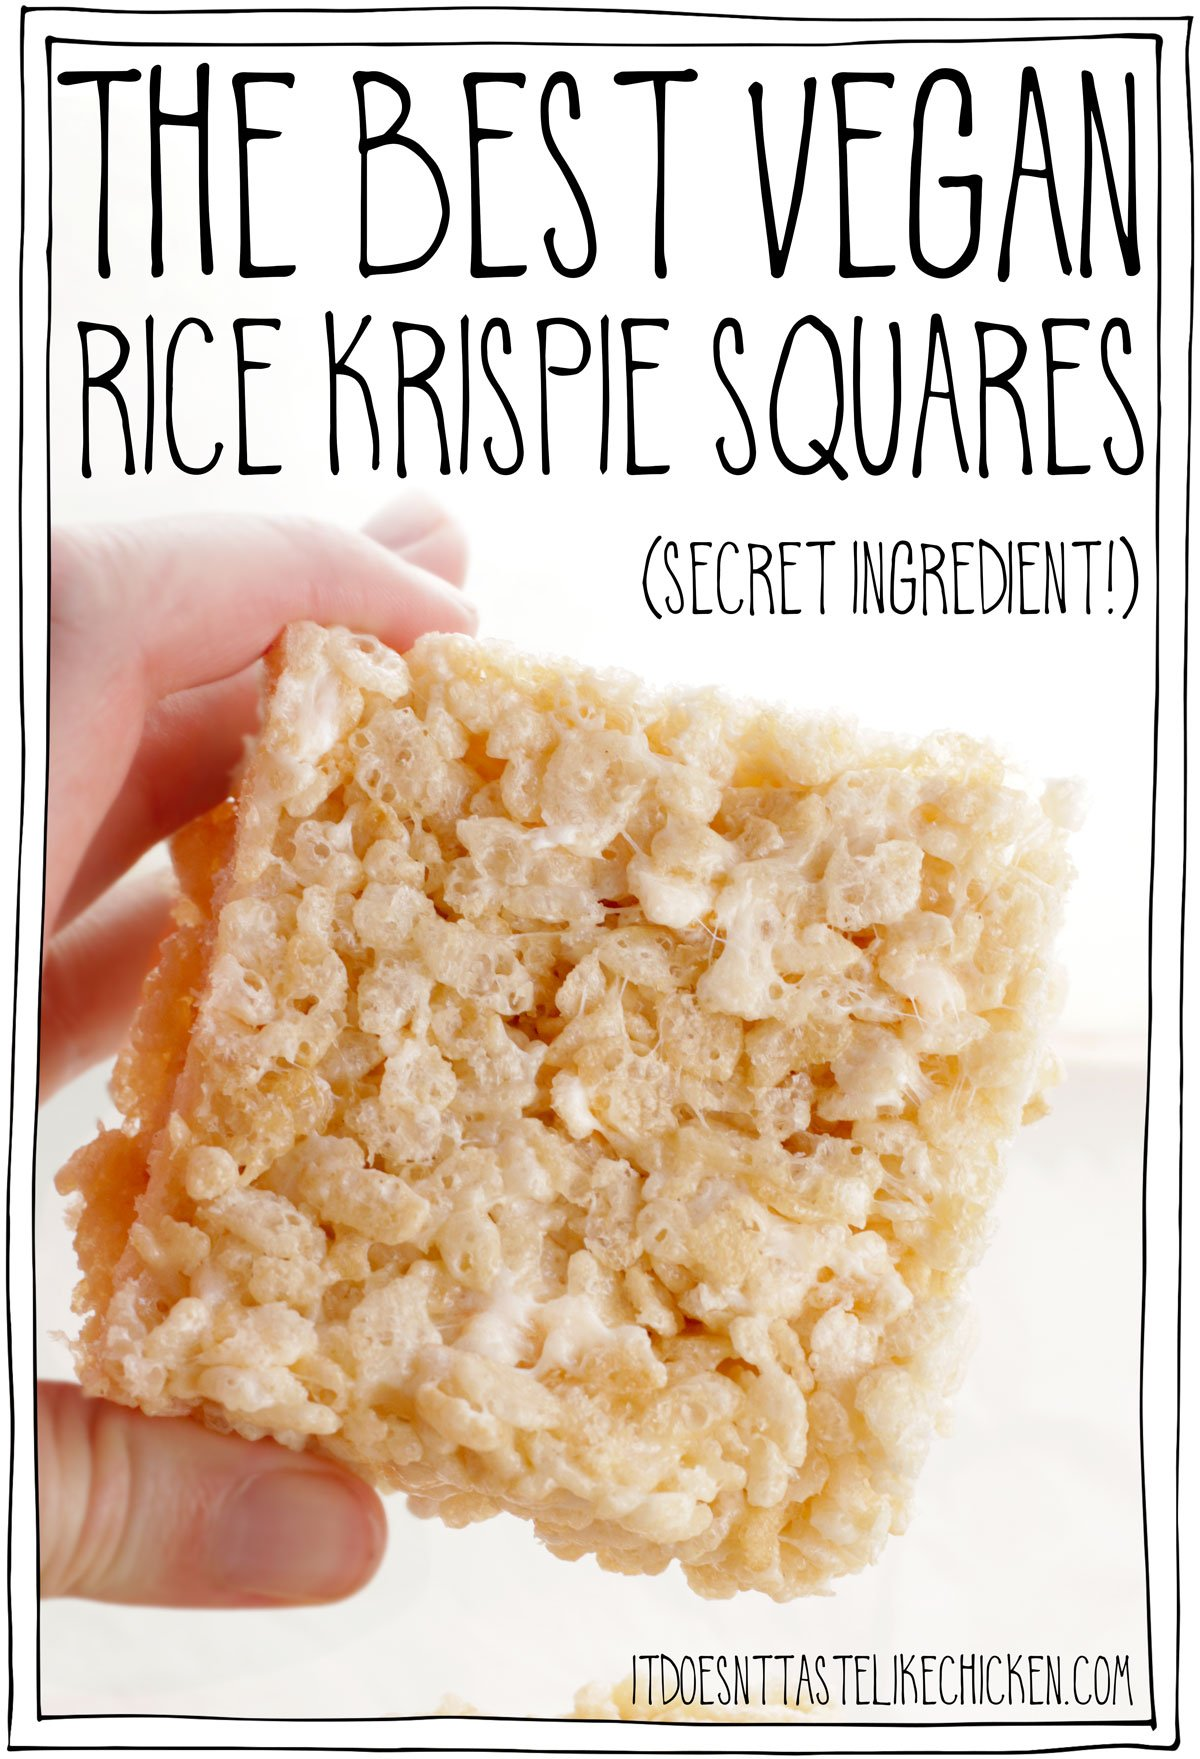 The best vegan rice Krispie squares! Just 10 minutes to whip up and only 6 simple ingredients. I also share with you my super-secret ingredient that makes these vegan rice Krispie treats the absolute hands-down best! Hint: these rice Krispie squares have a very slight birthday cake flavor!! Ooey gooey marshmallow with crispy rice cereal, talk about snack perfection. #itdoesnttastelikechicken #vegandesserts